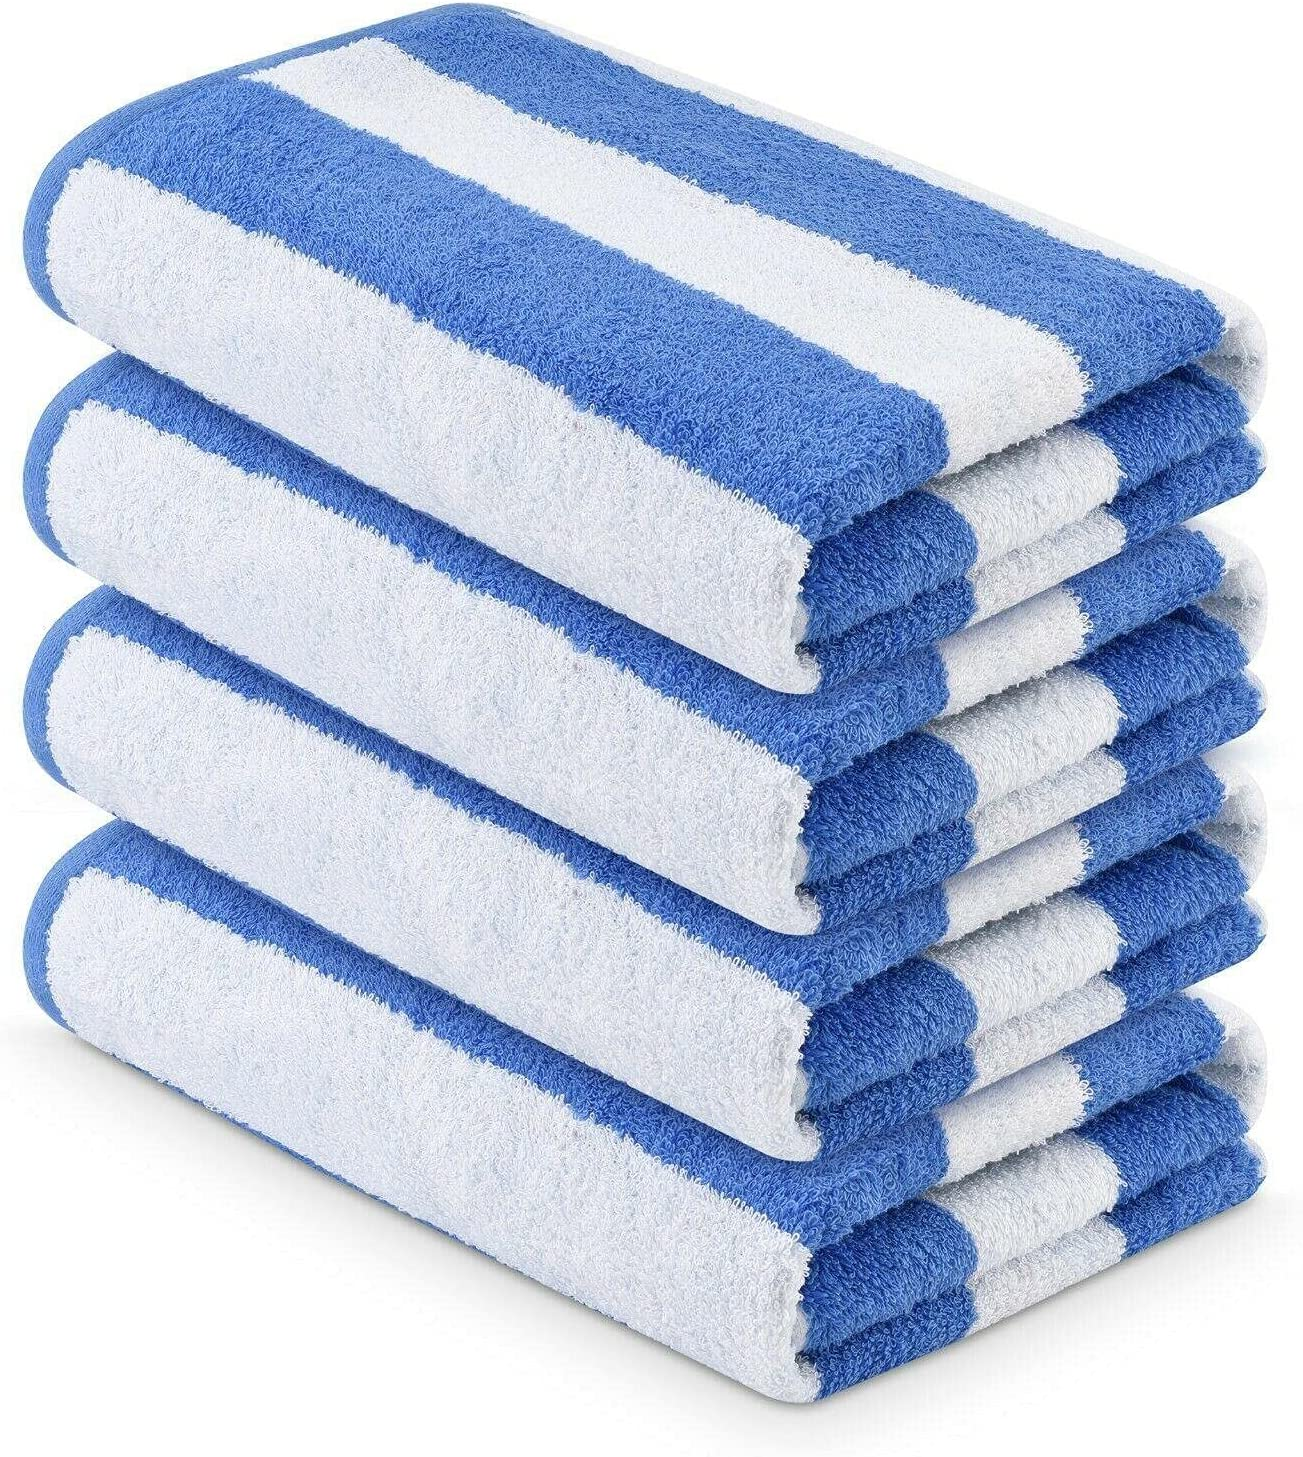 Very popular! 4 Pieces Pack- Bargain sale 30x60 inches-Large T Pool Beach Blue Towels